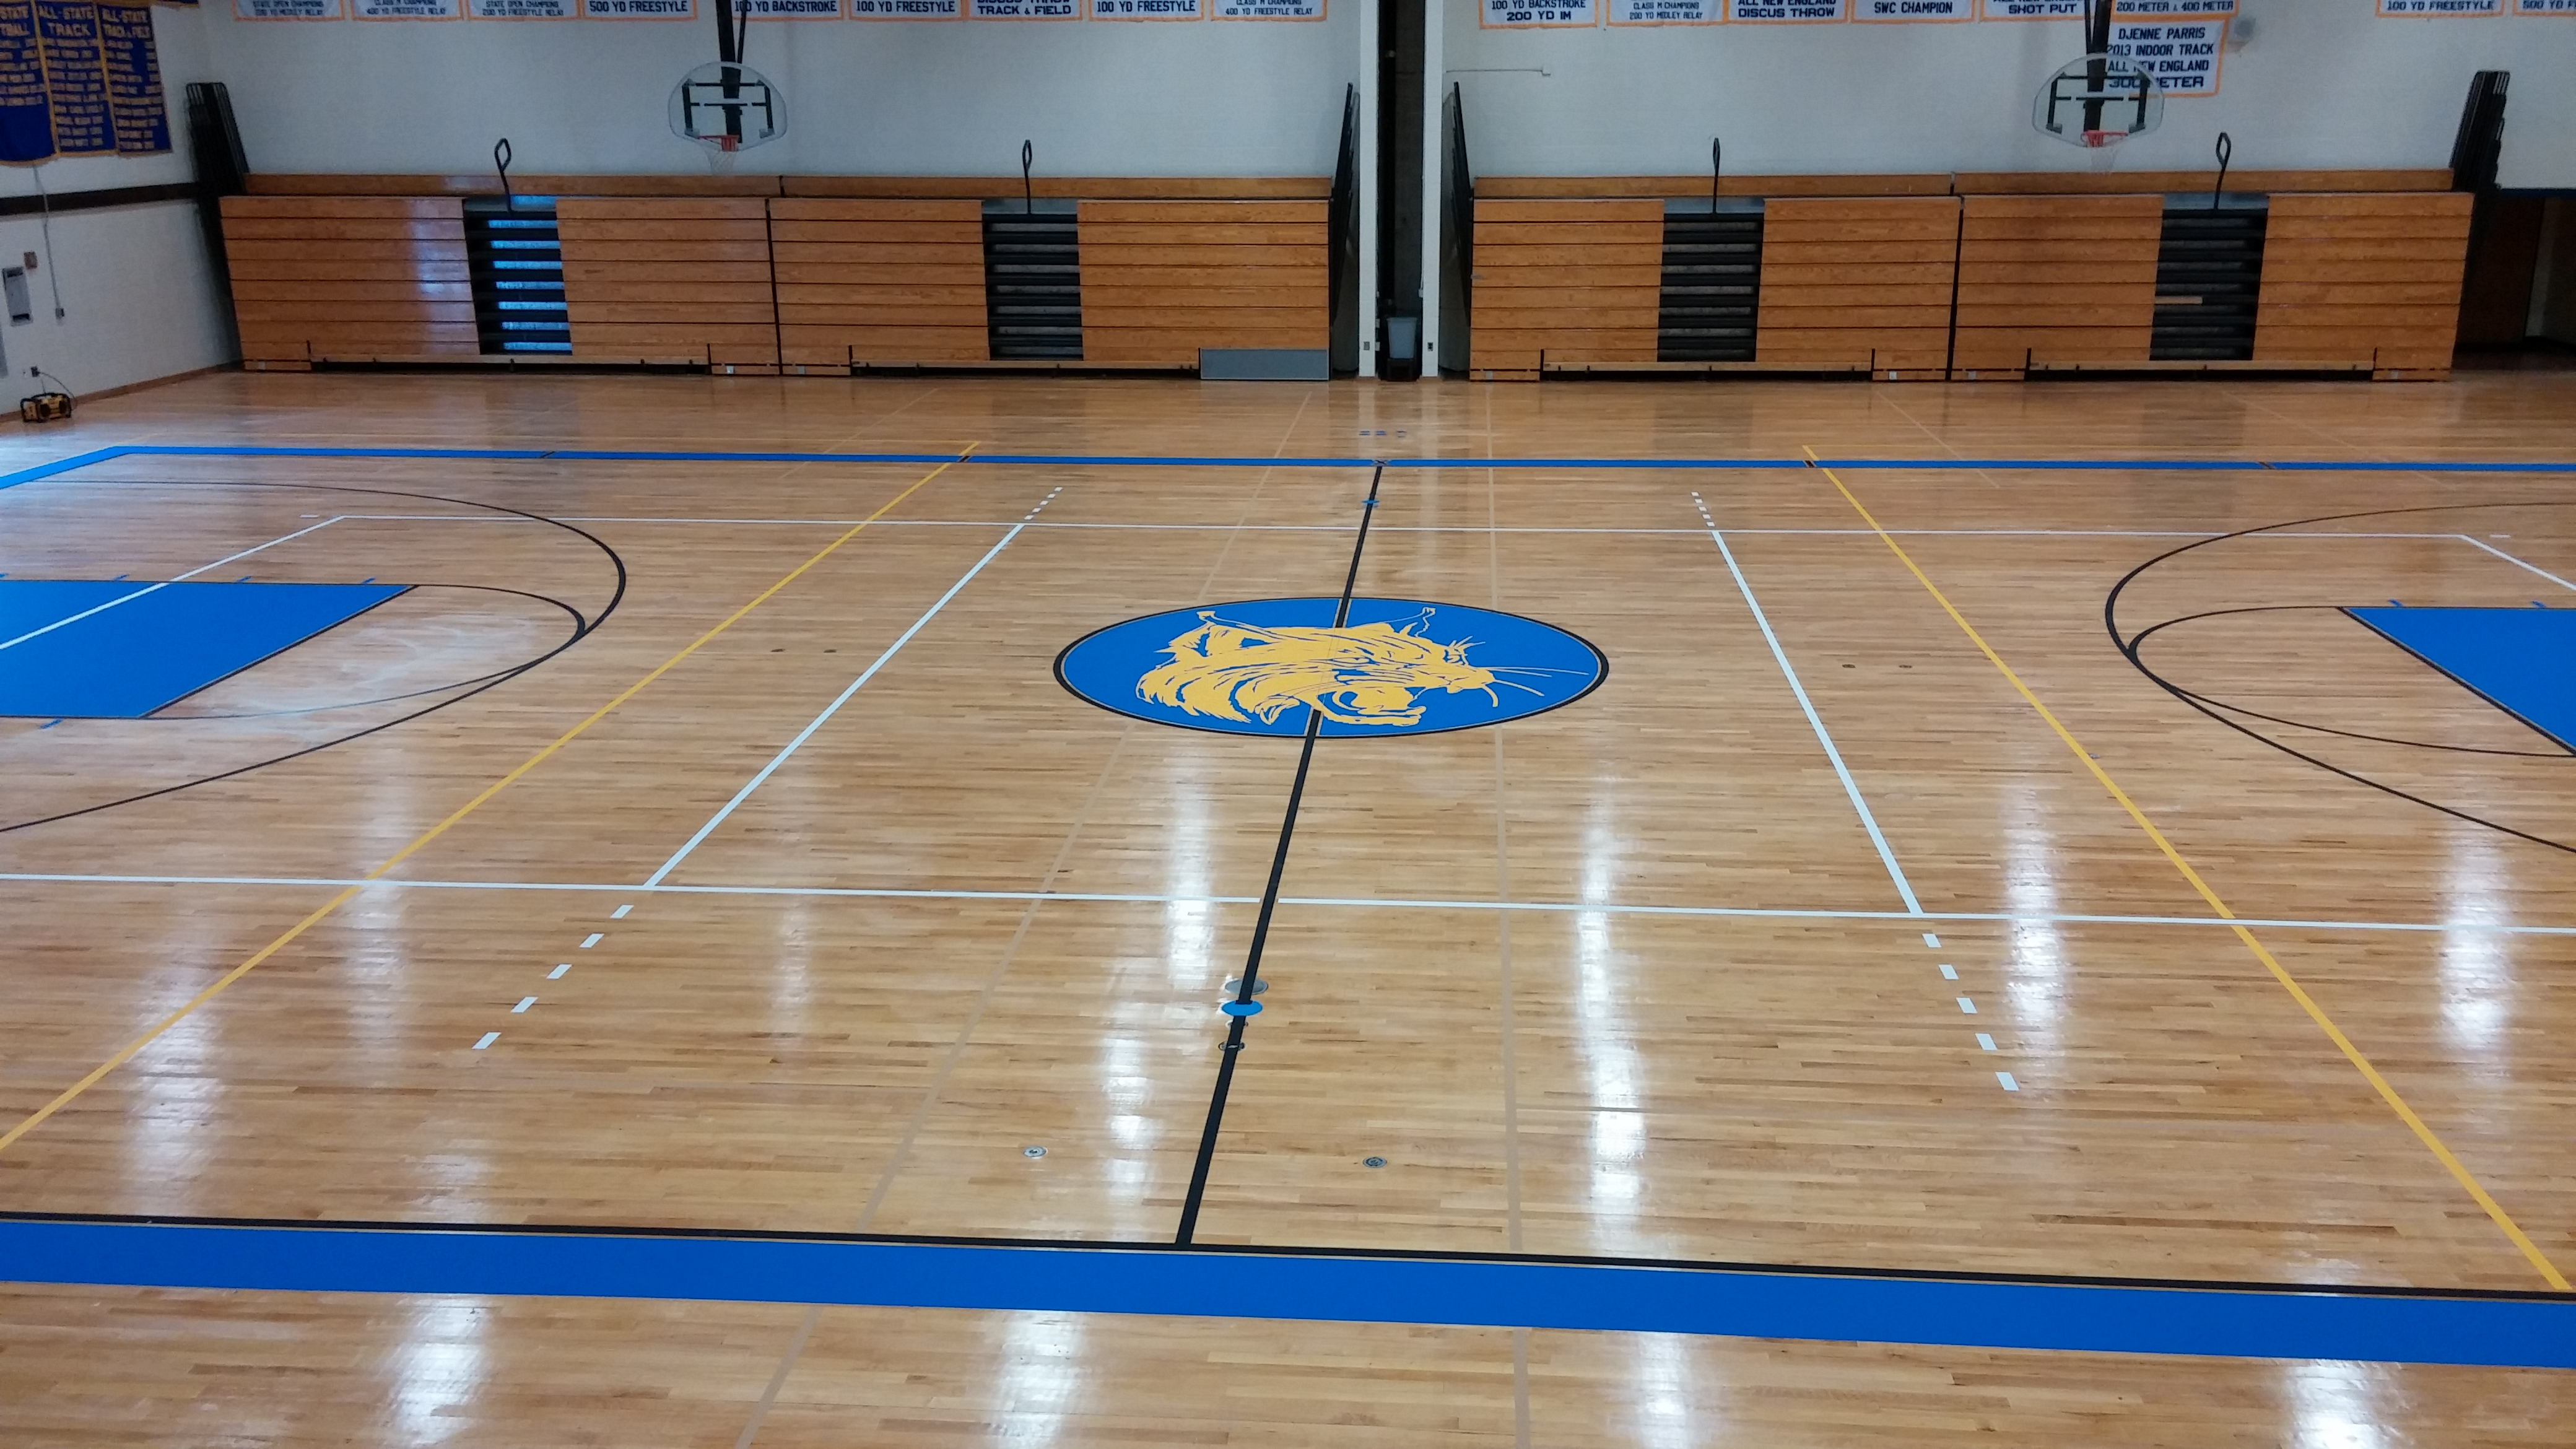 Brookfield High School - Brookfield CT.JPG